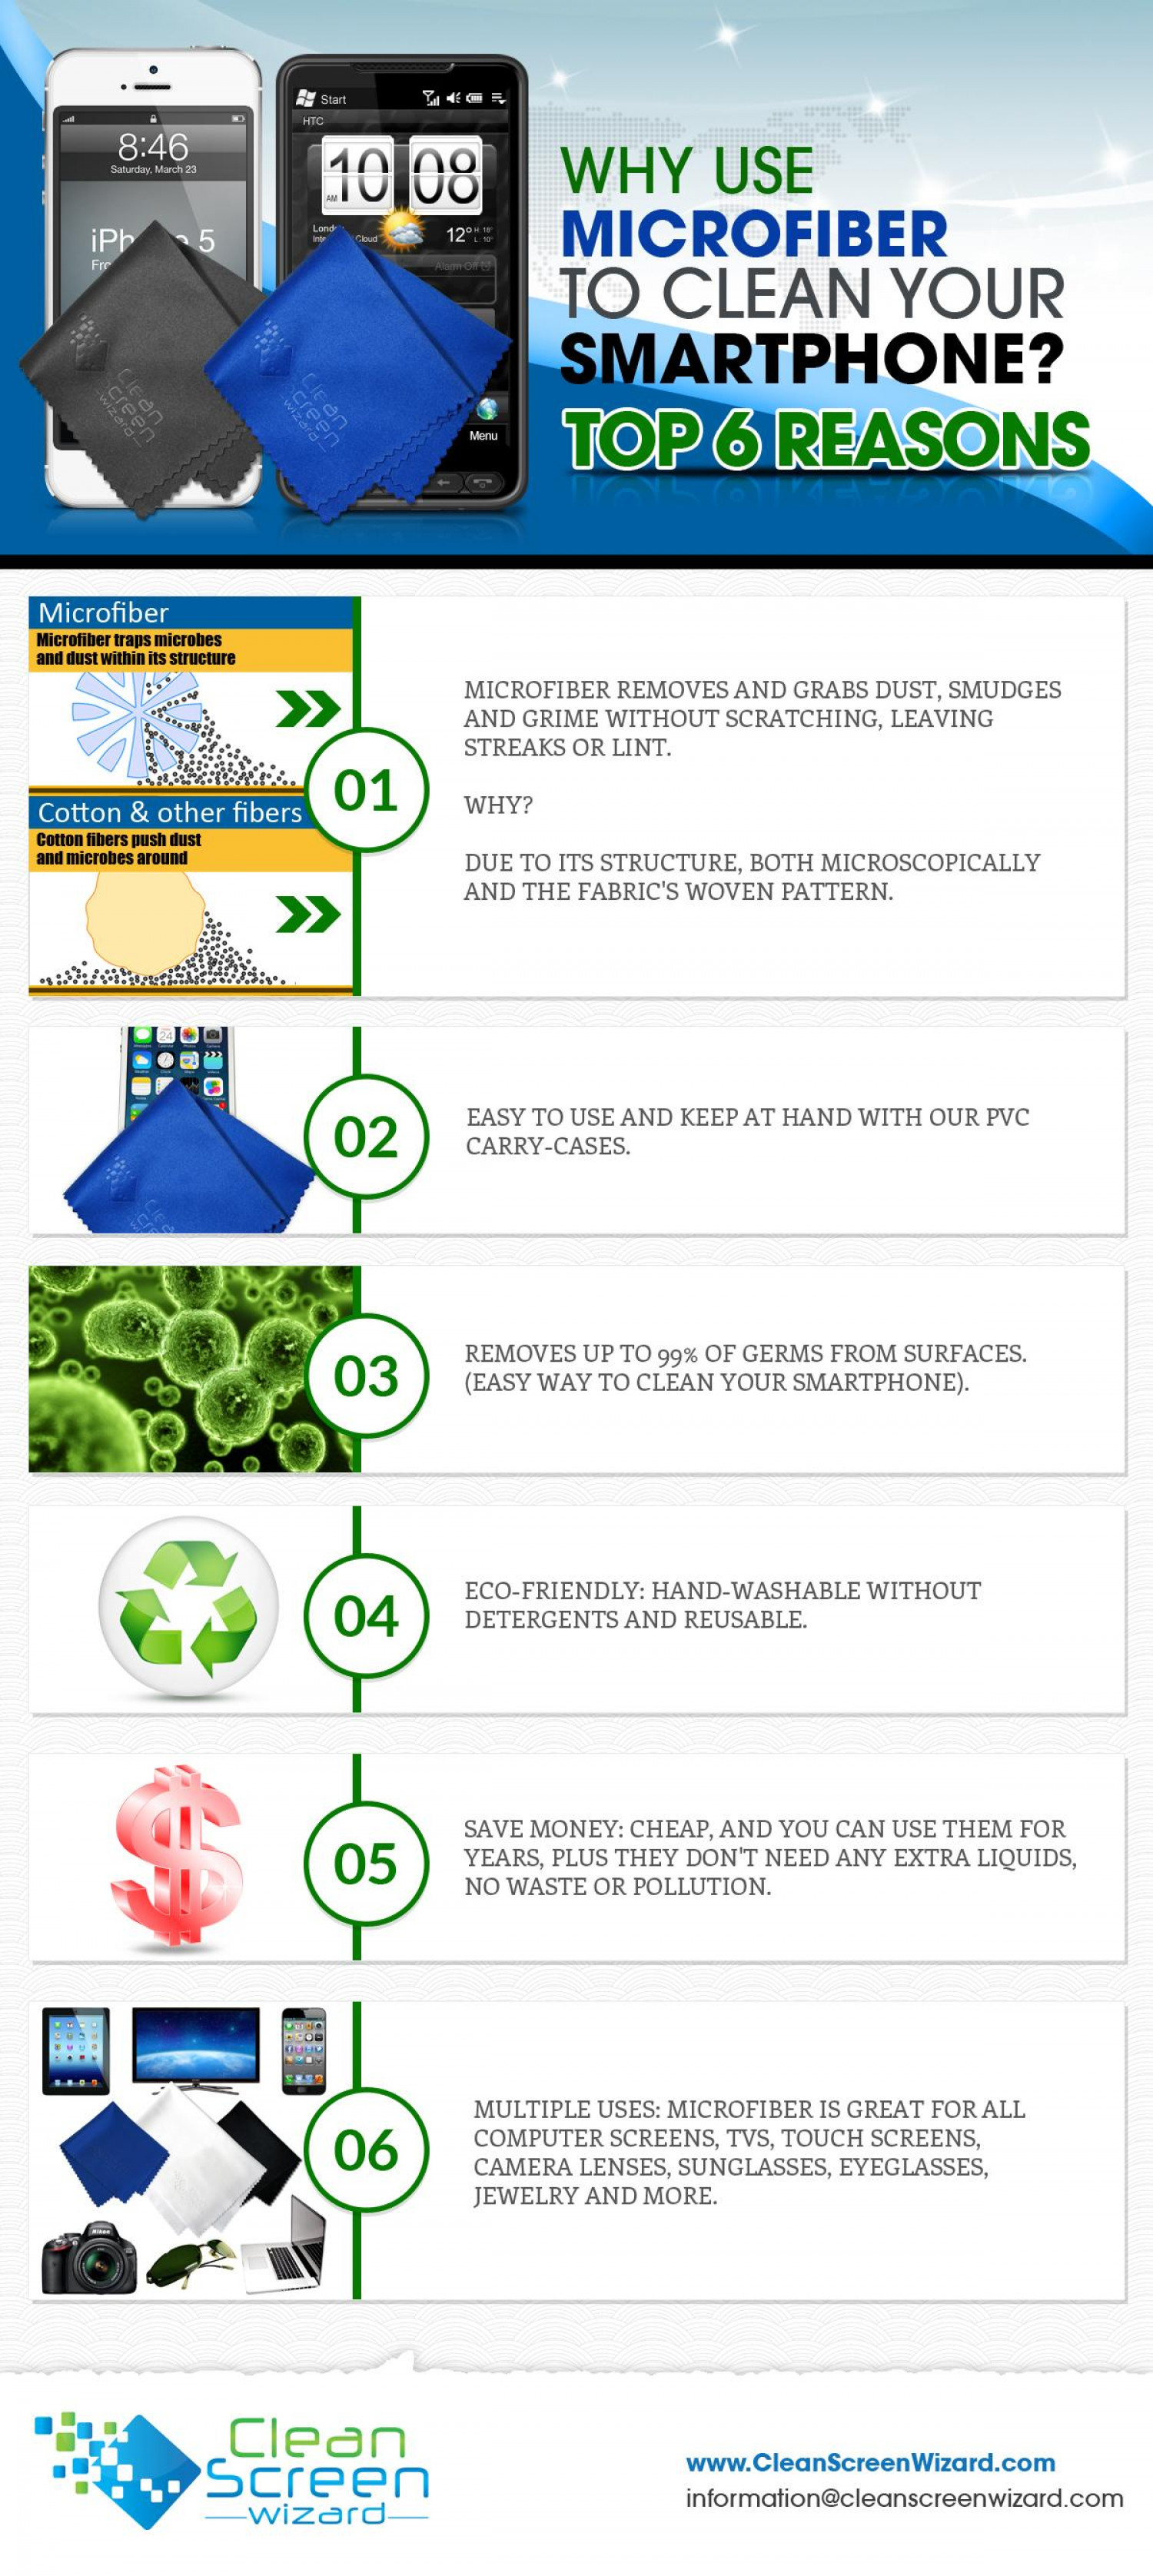 Why Use Microfiber Cleaning Cloths? Top 6 Reasons Infographic